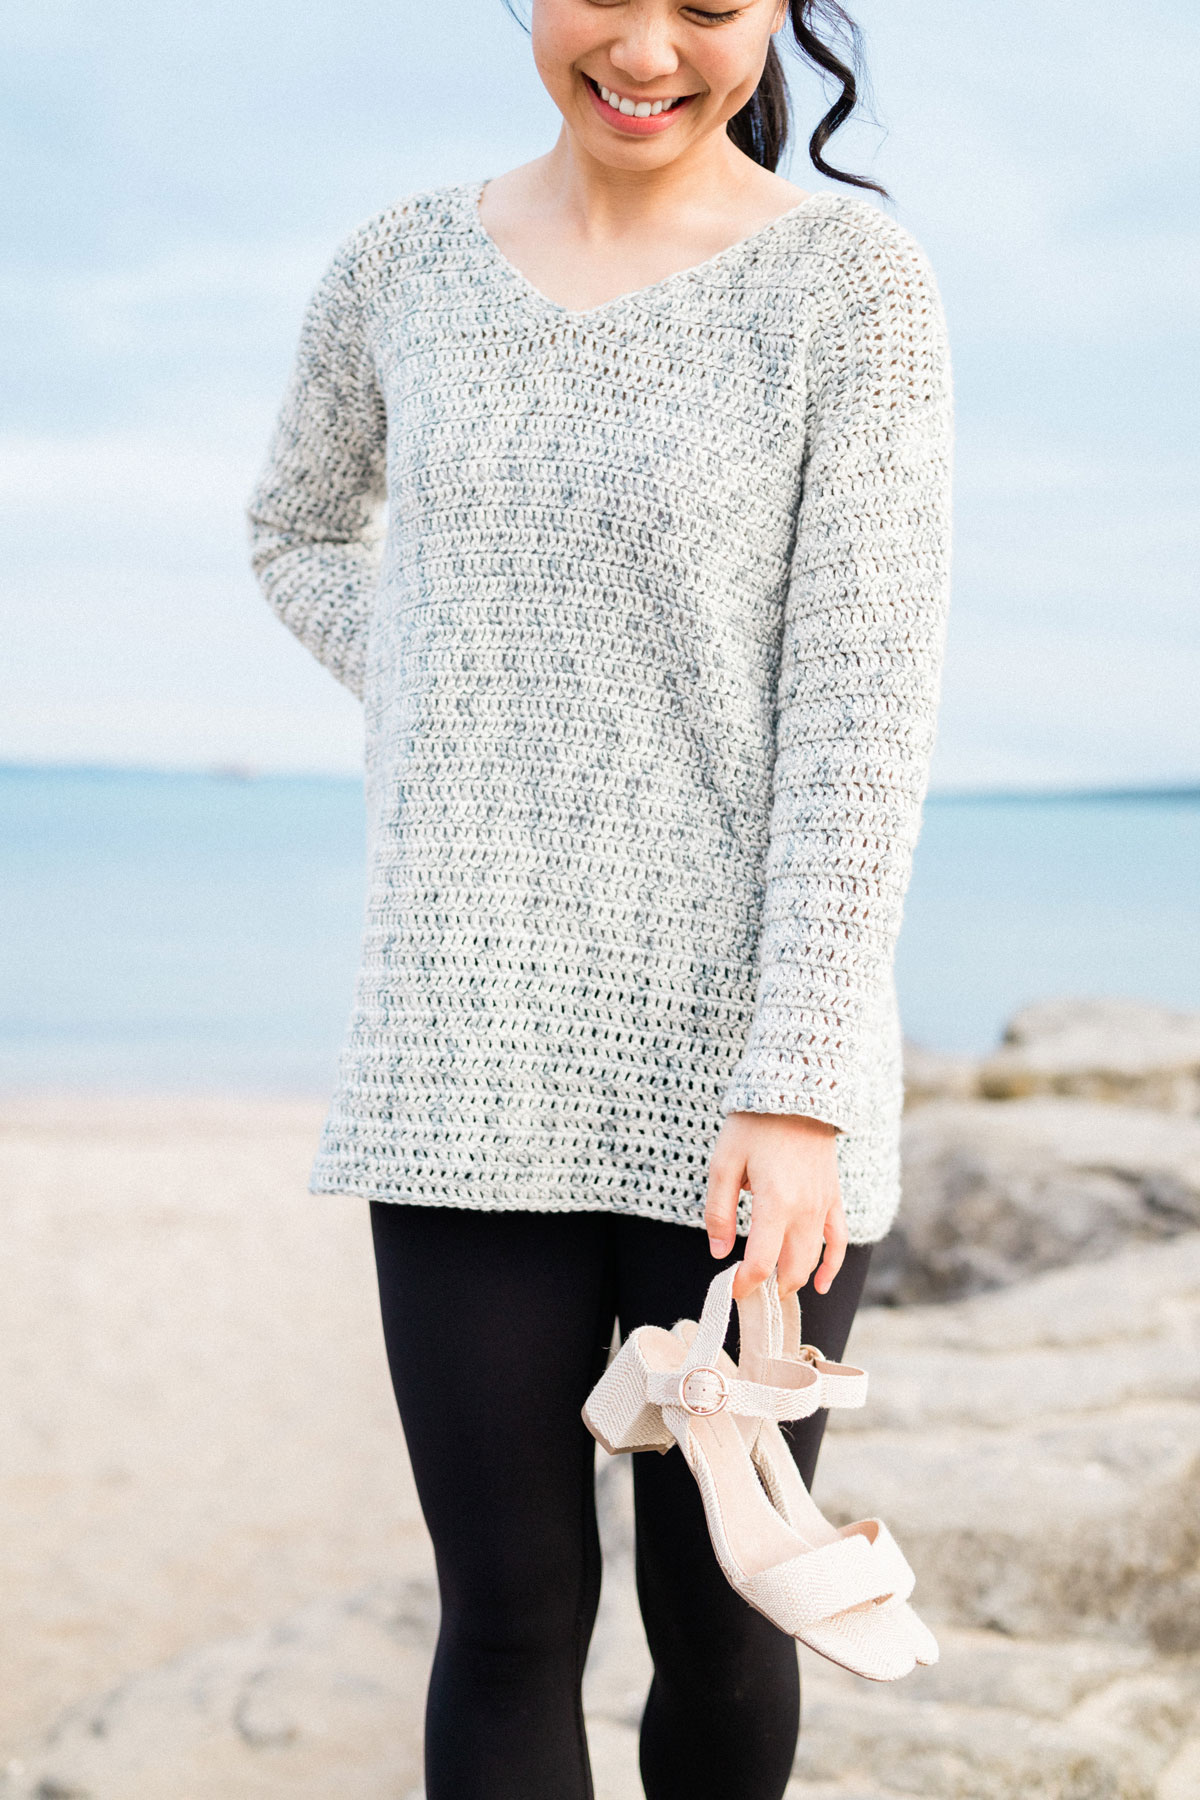 v-neck crochet sweater for summer at the beach with sandals